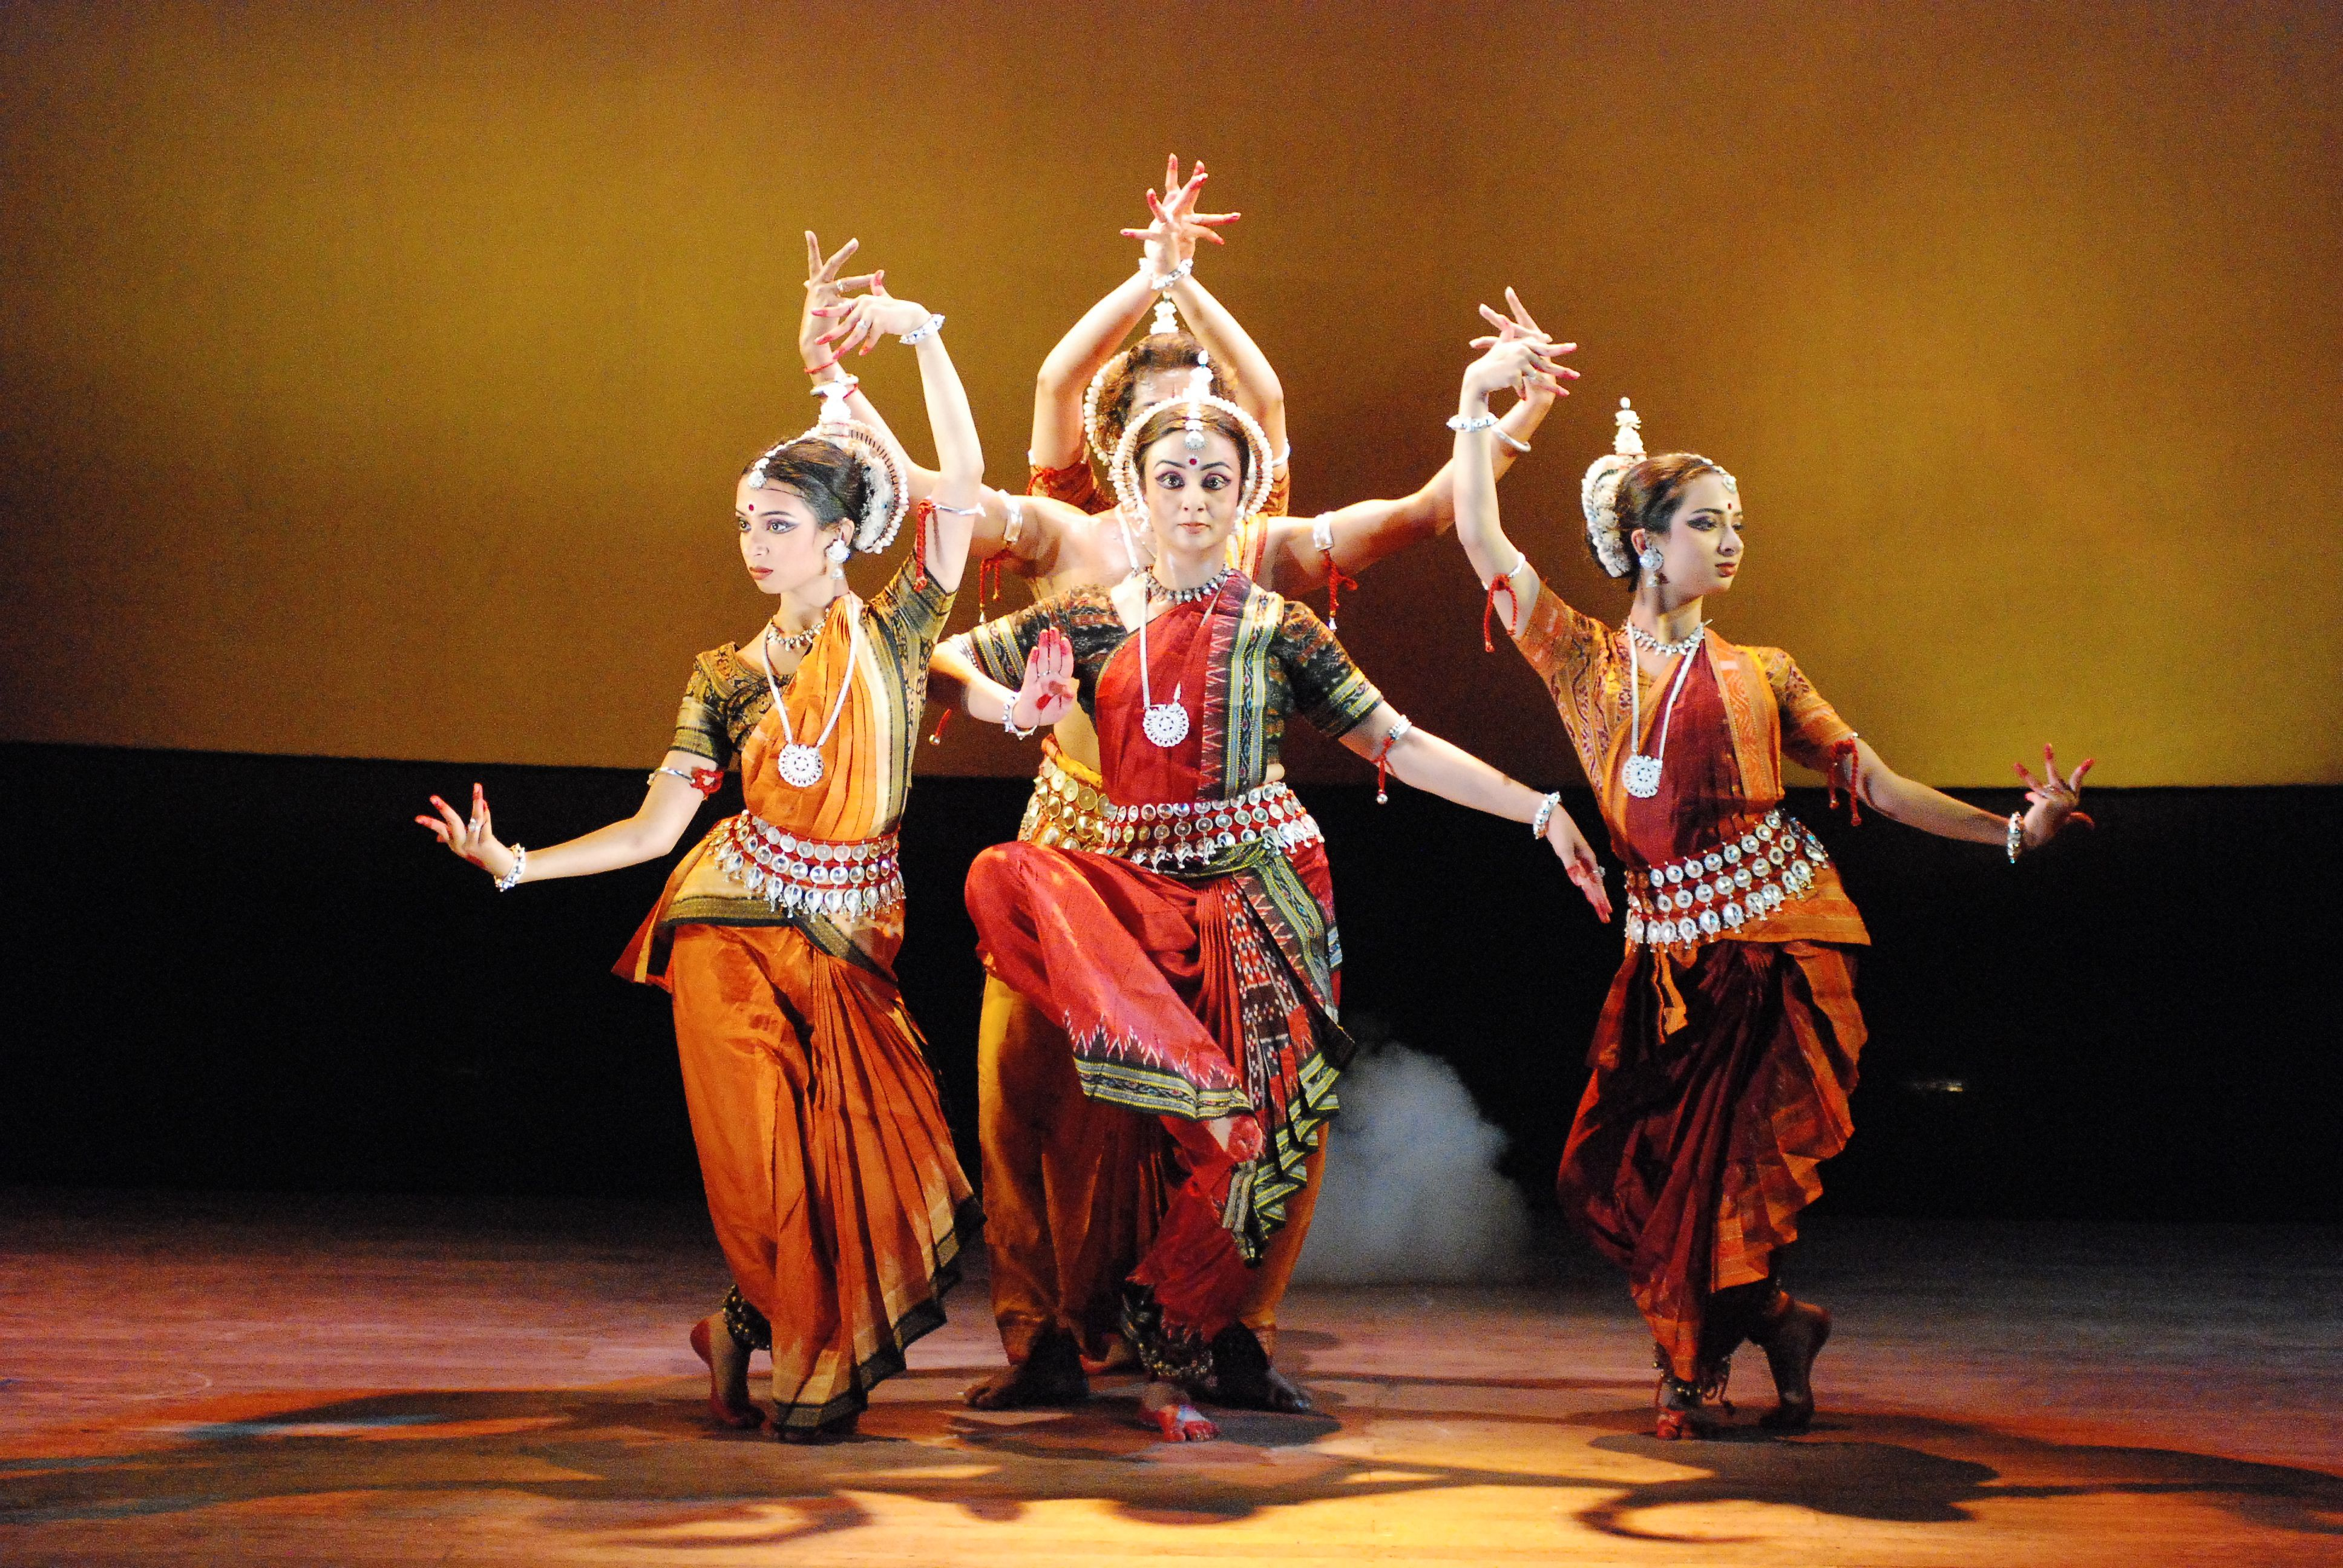 3872x2592 Dance classes deals in bangalore : Checkers coupons november 2018